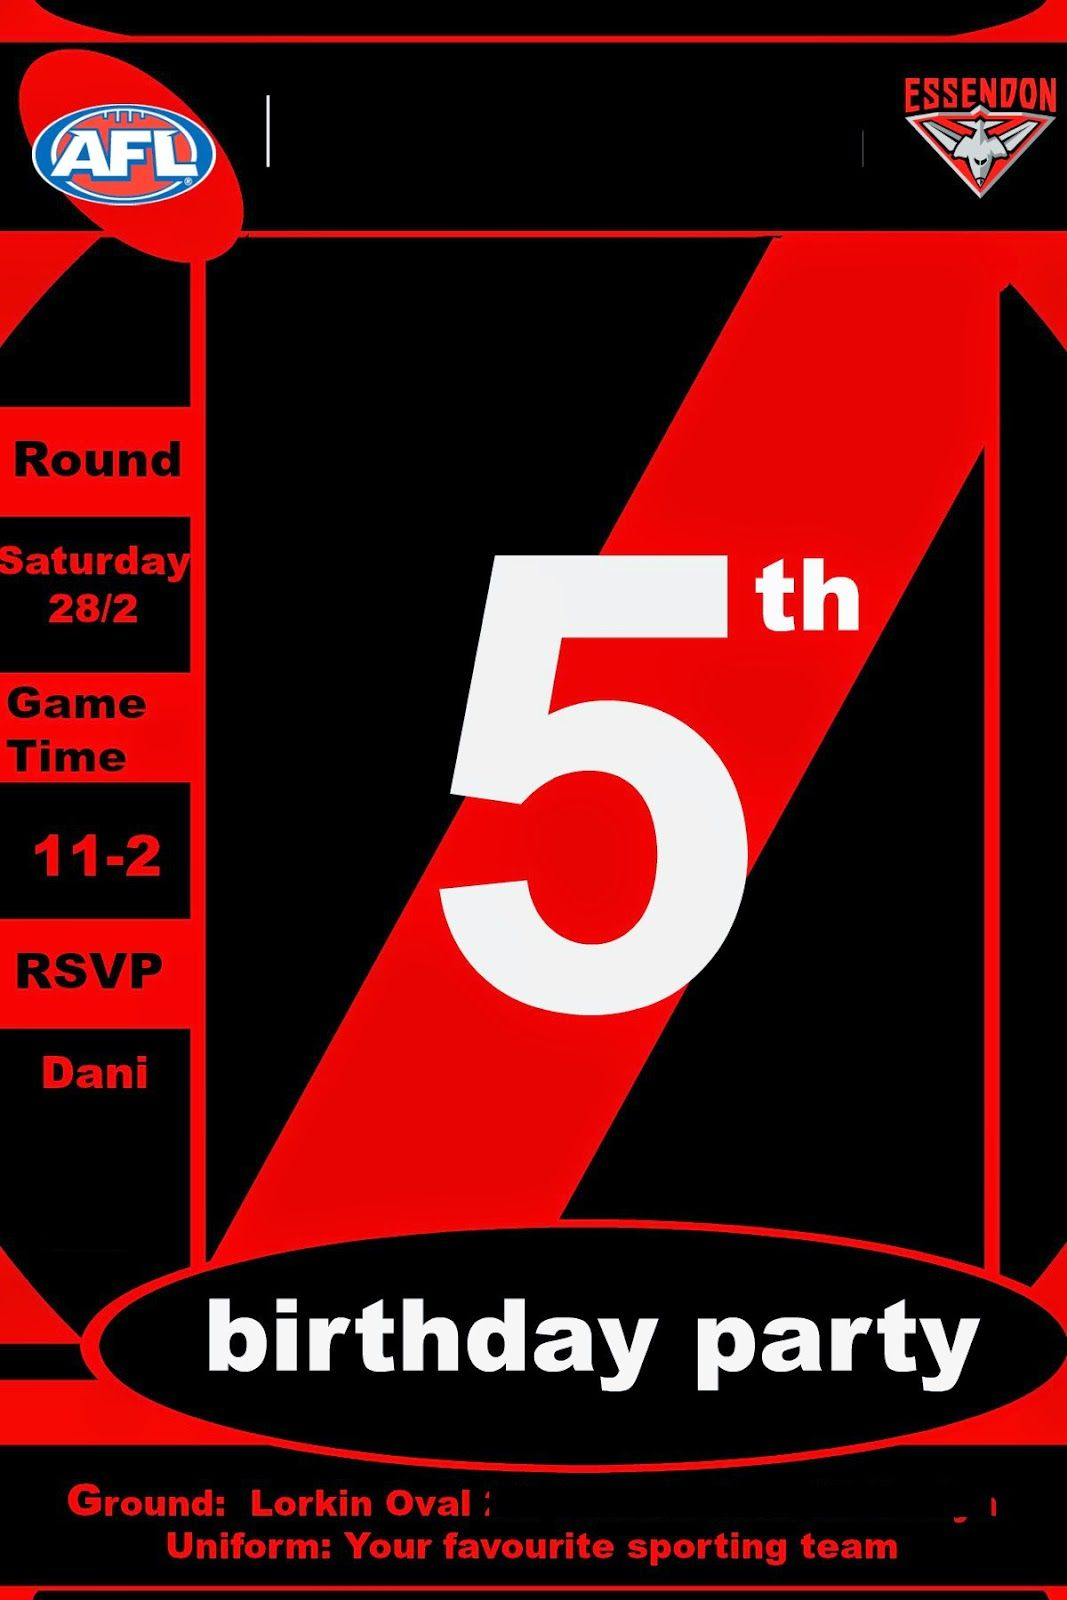 Essendon Bombers Birthday Party Invitations | Birthday parties ...